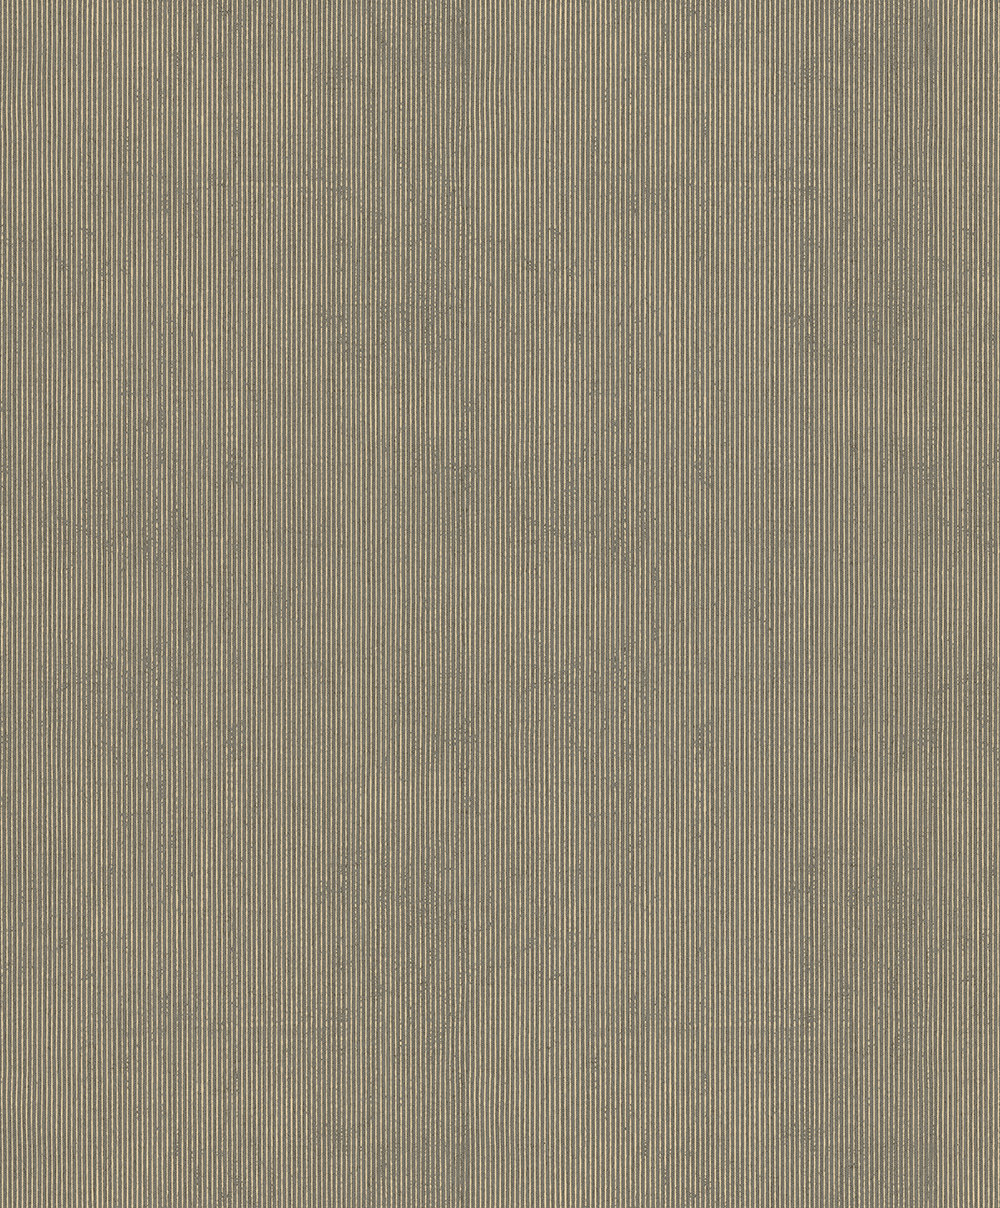 The Paper Partnership Sackville Chocolate Gold Wallpaper - Product code: WP0130605